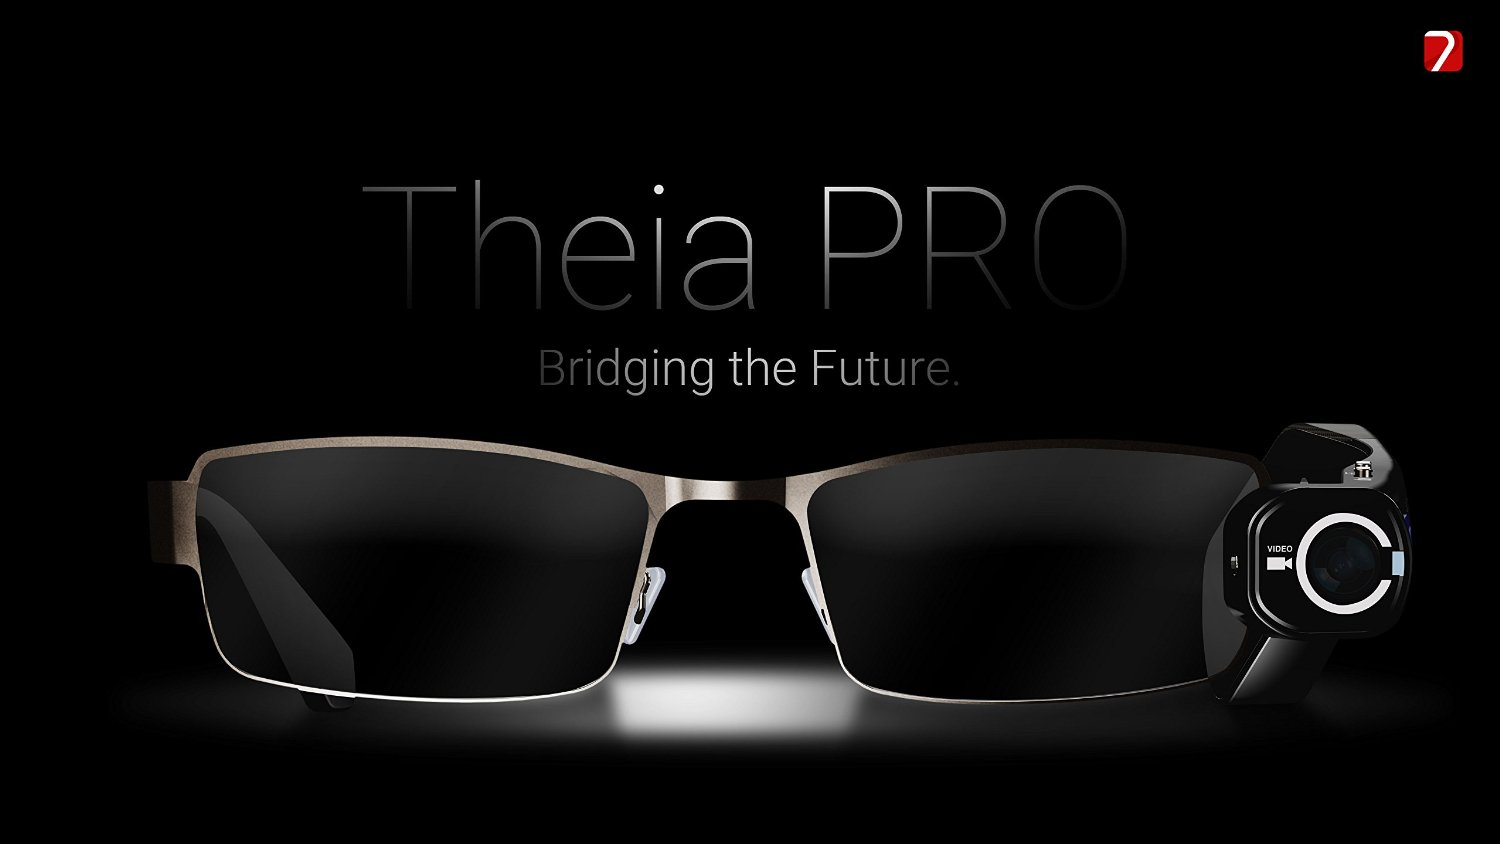 7 Theia Pro Glasses Mounted Hd Pov Camera - Getdatgadget-2952